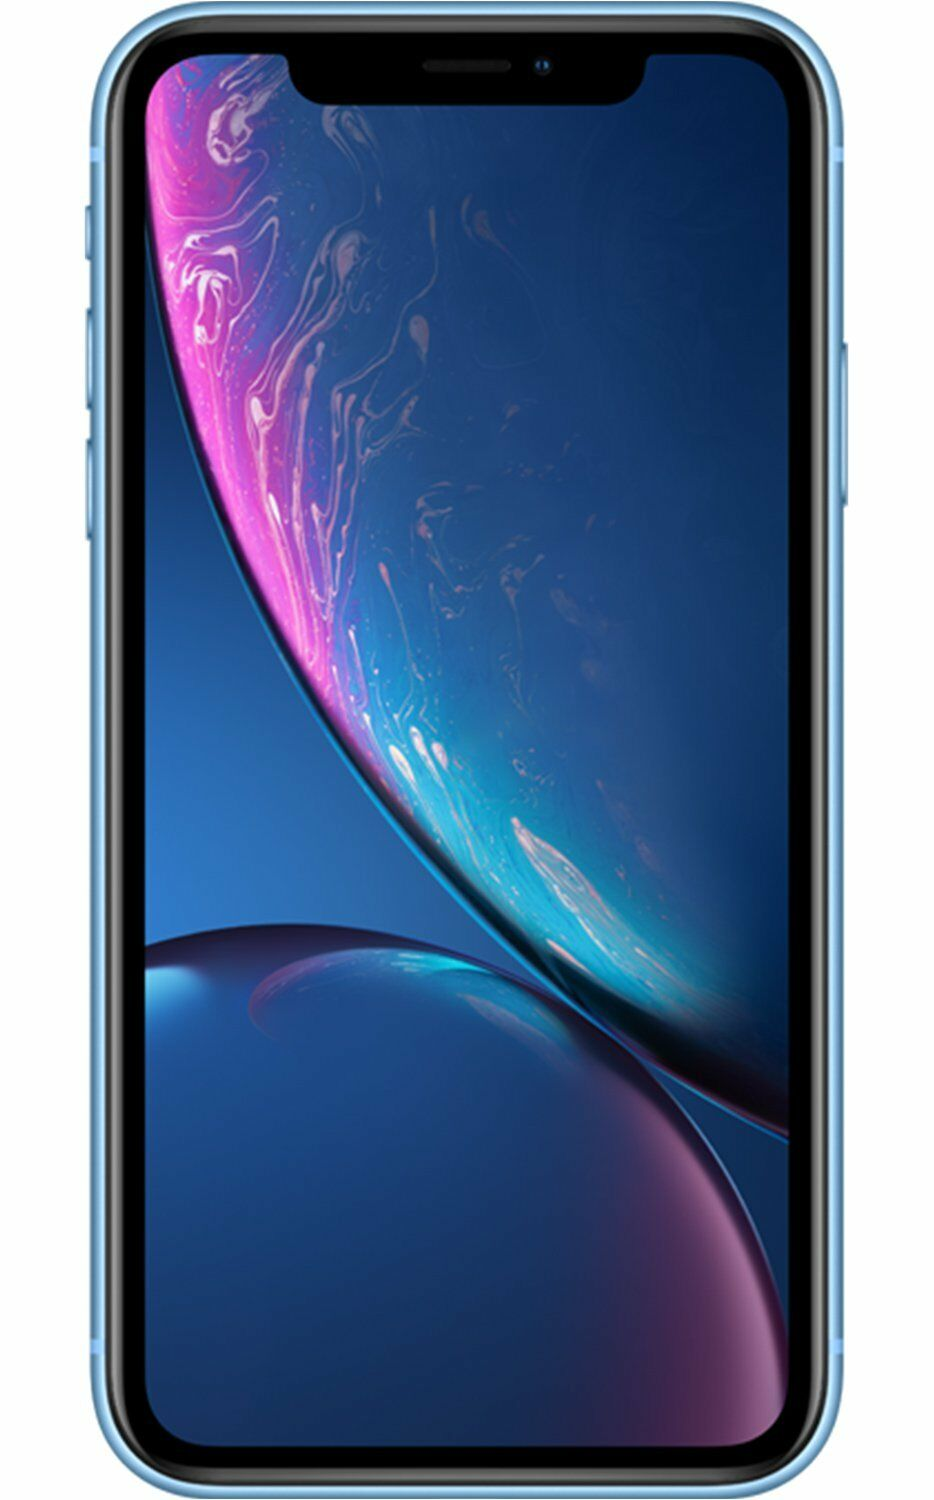 Apple-iPhone-XR-64GB-Factory-Unlocked-Smartphone-4G-LTE-iOS-Smartphone thumbnail 8